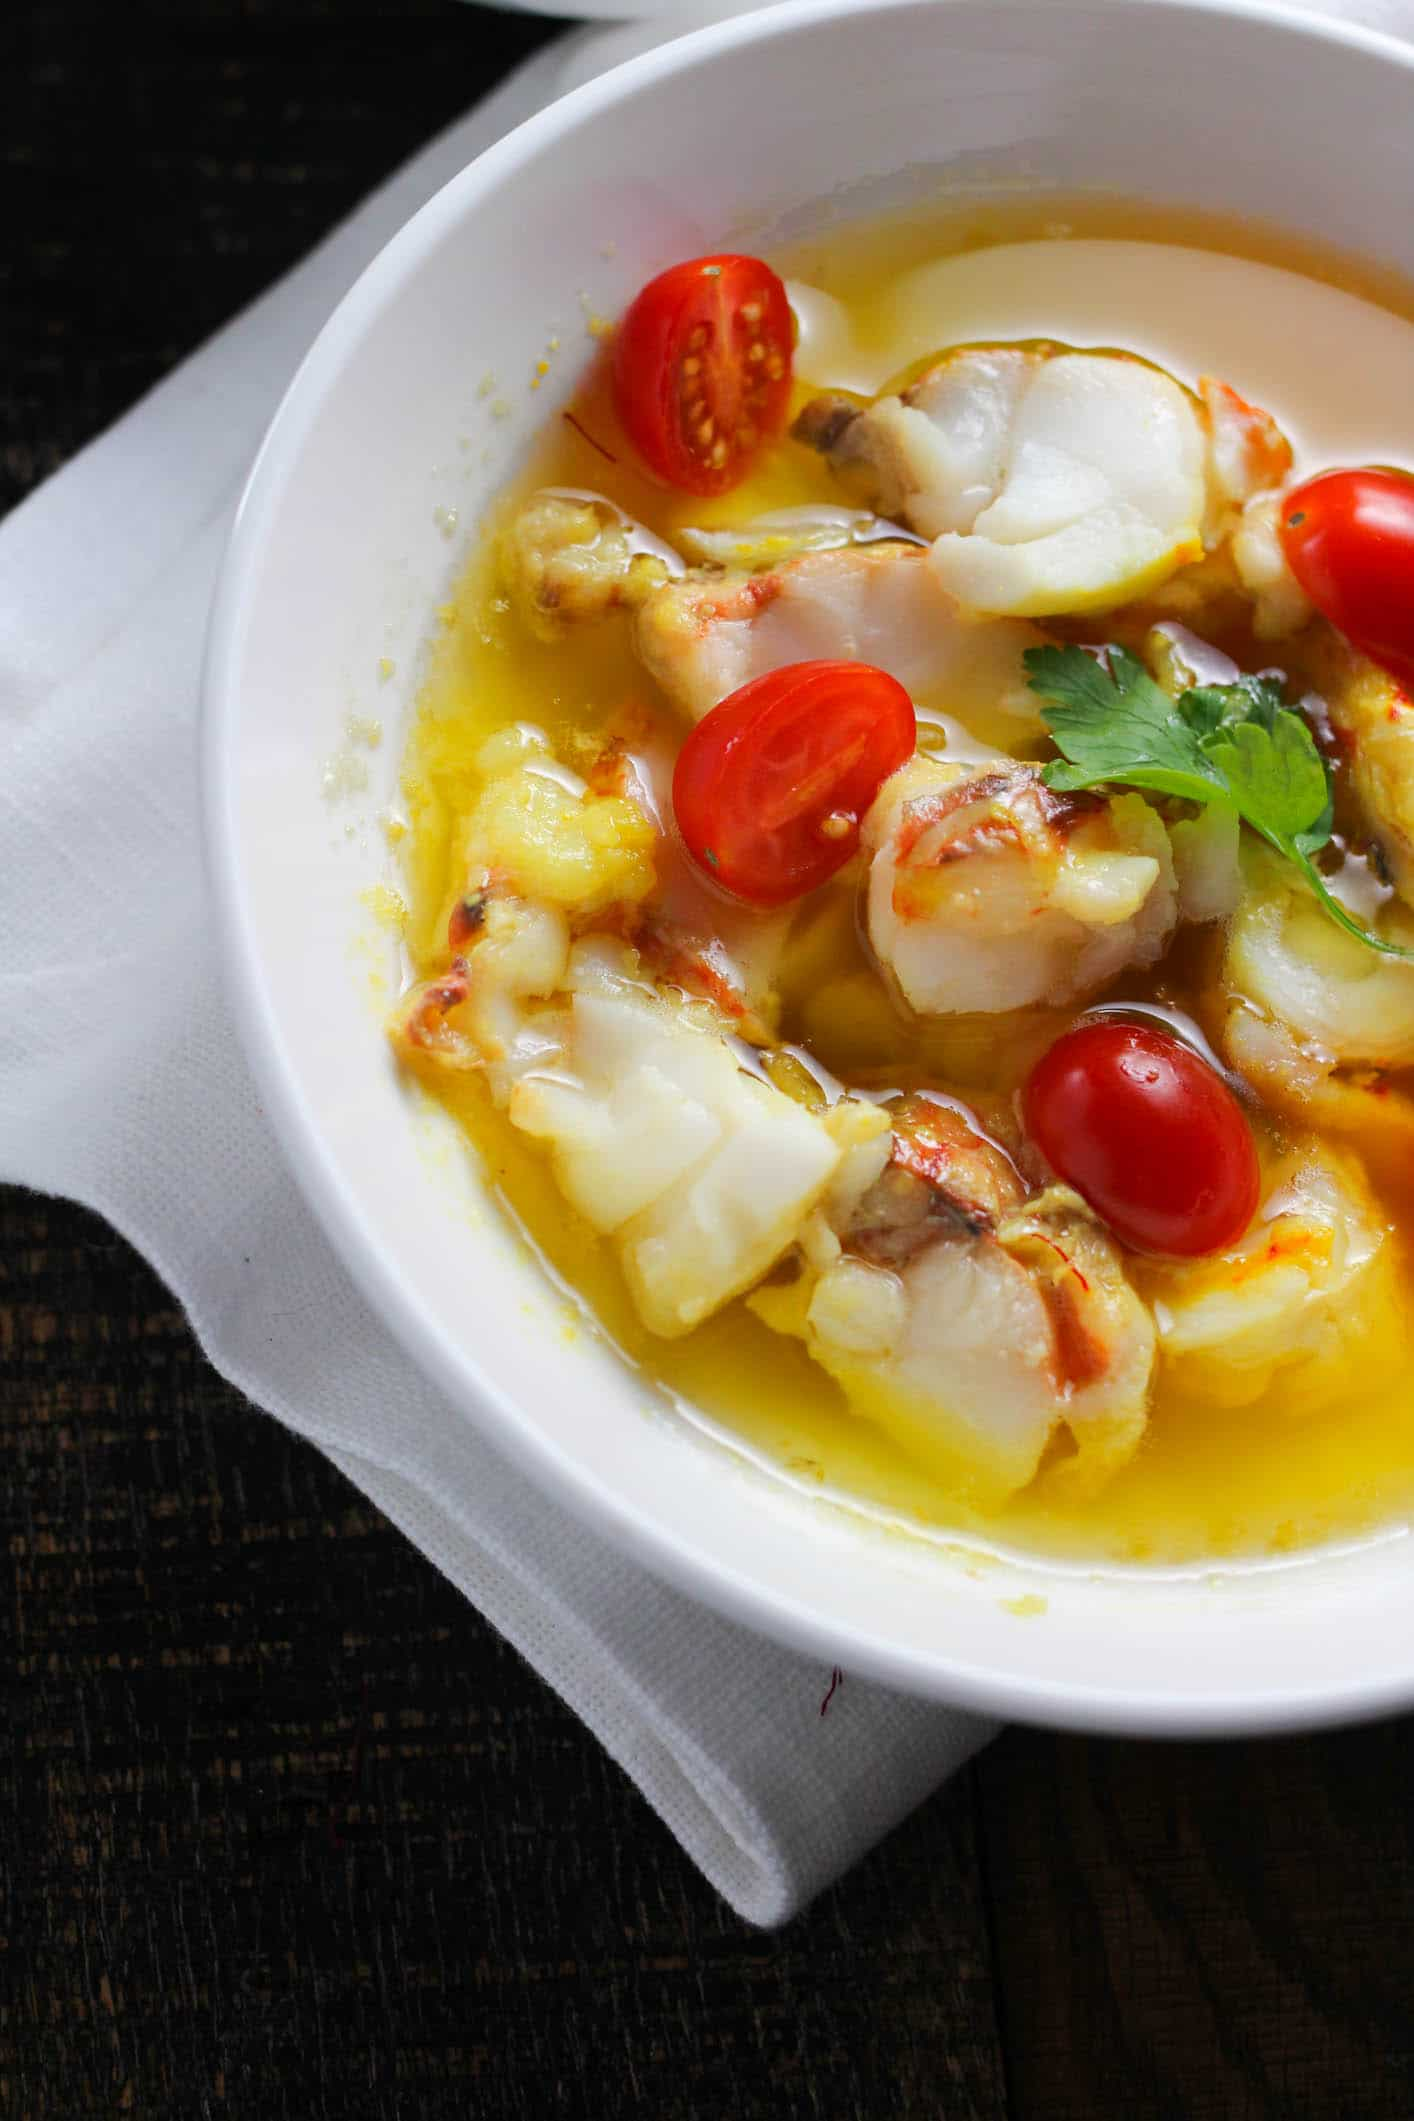 A sinfully elegant butter poached lobster with garlic and herbs is both impressive and ridiculously simple!